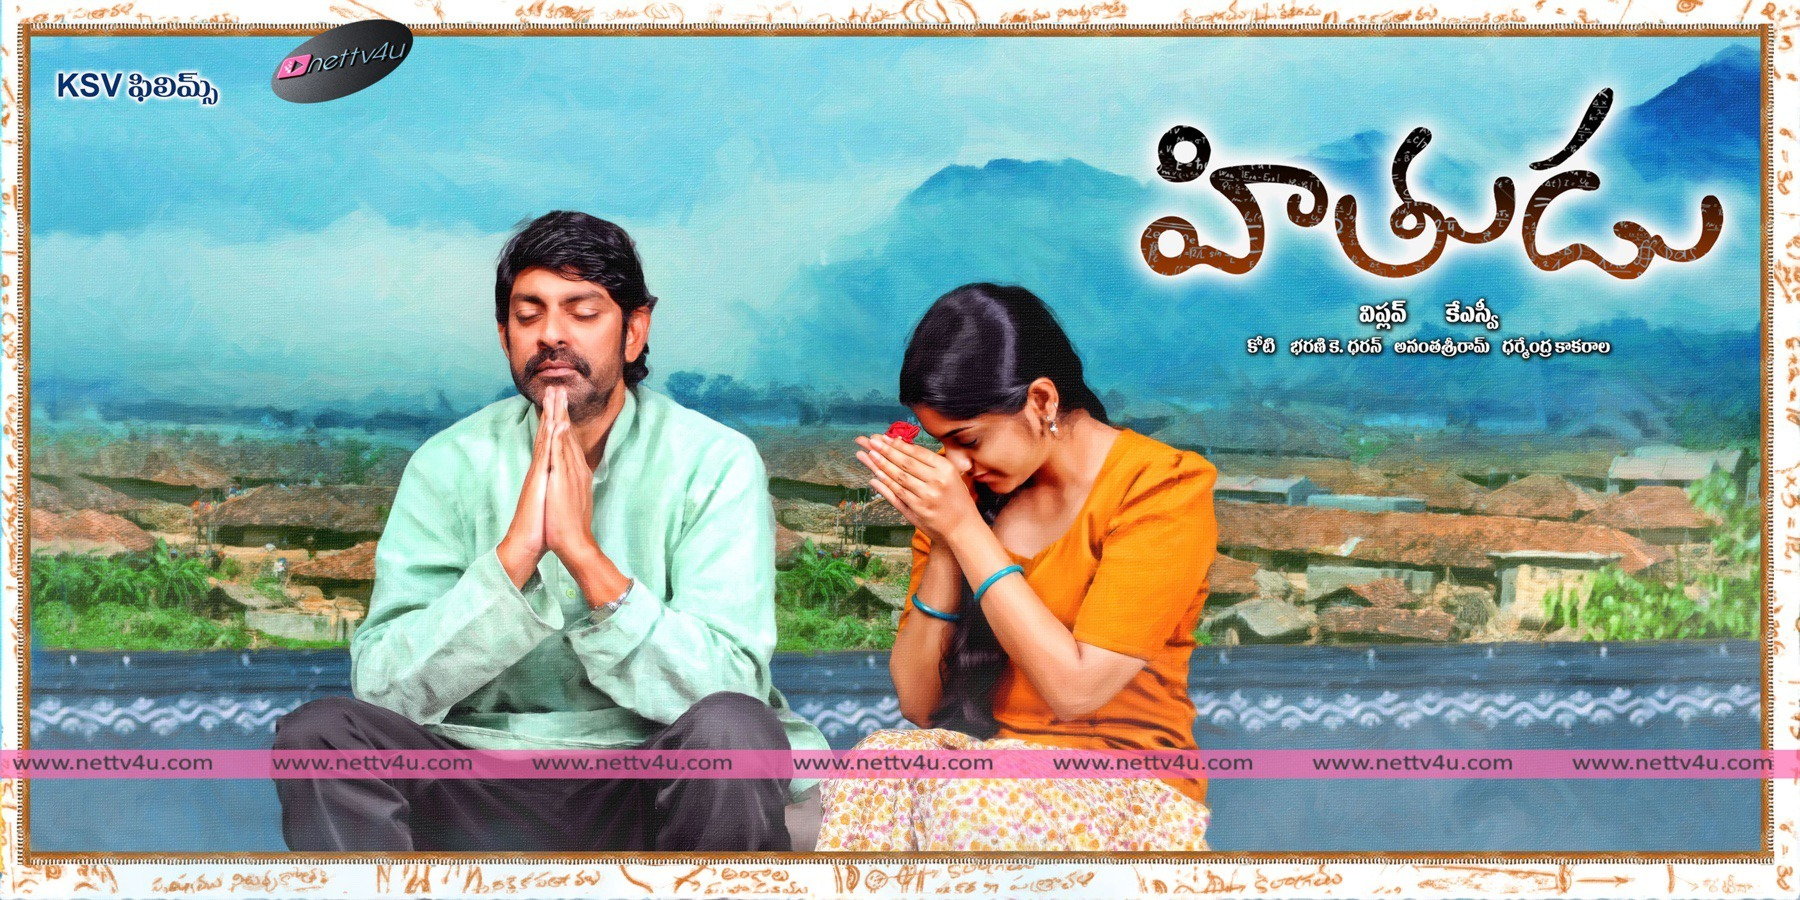 Jagapatibabu's Hithudu Movie Posters And Stills